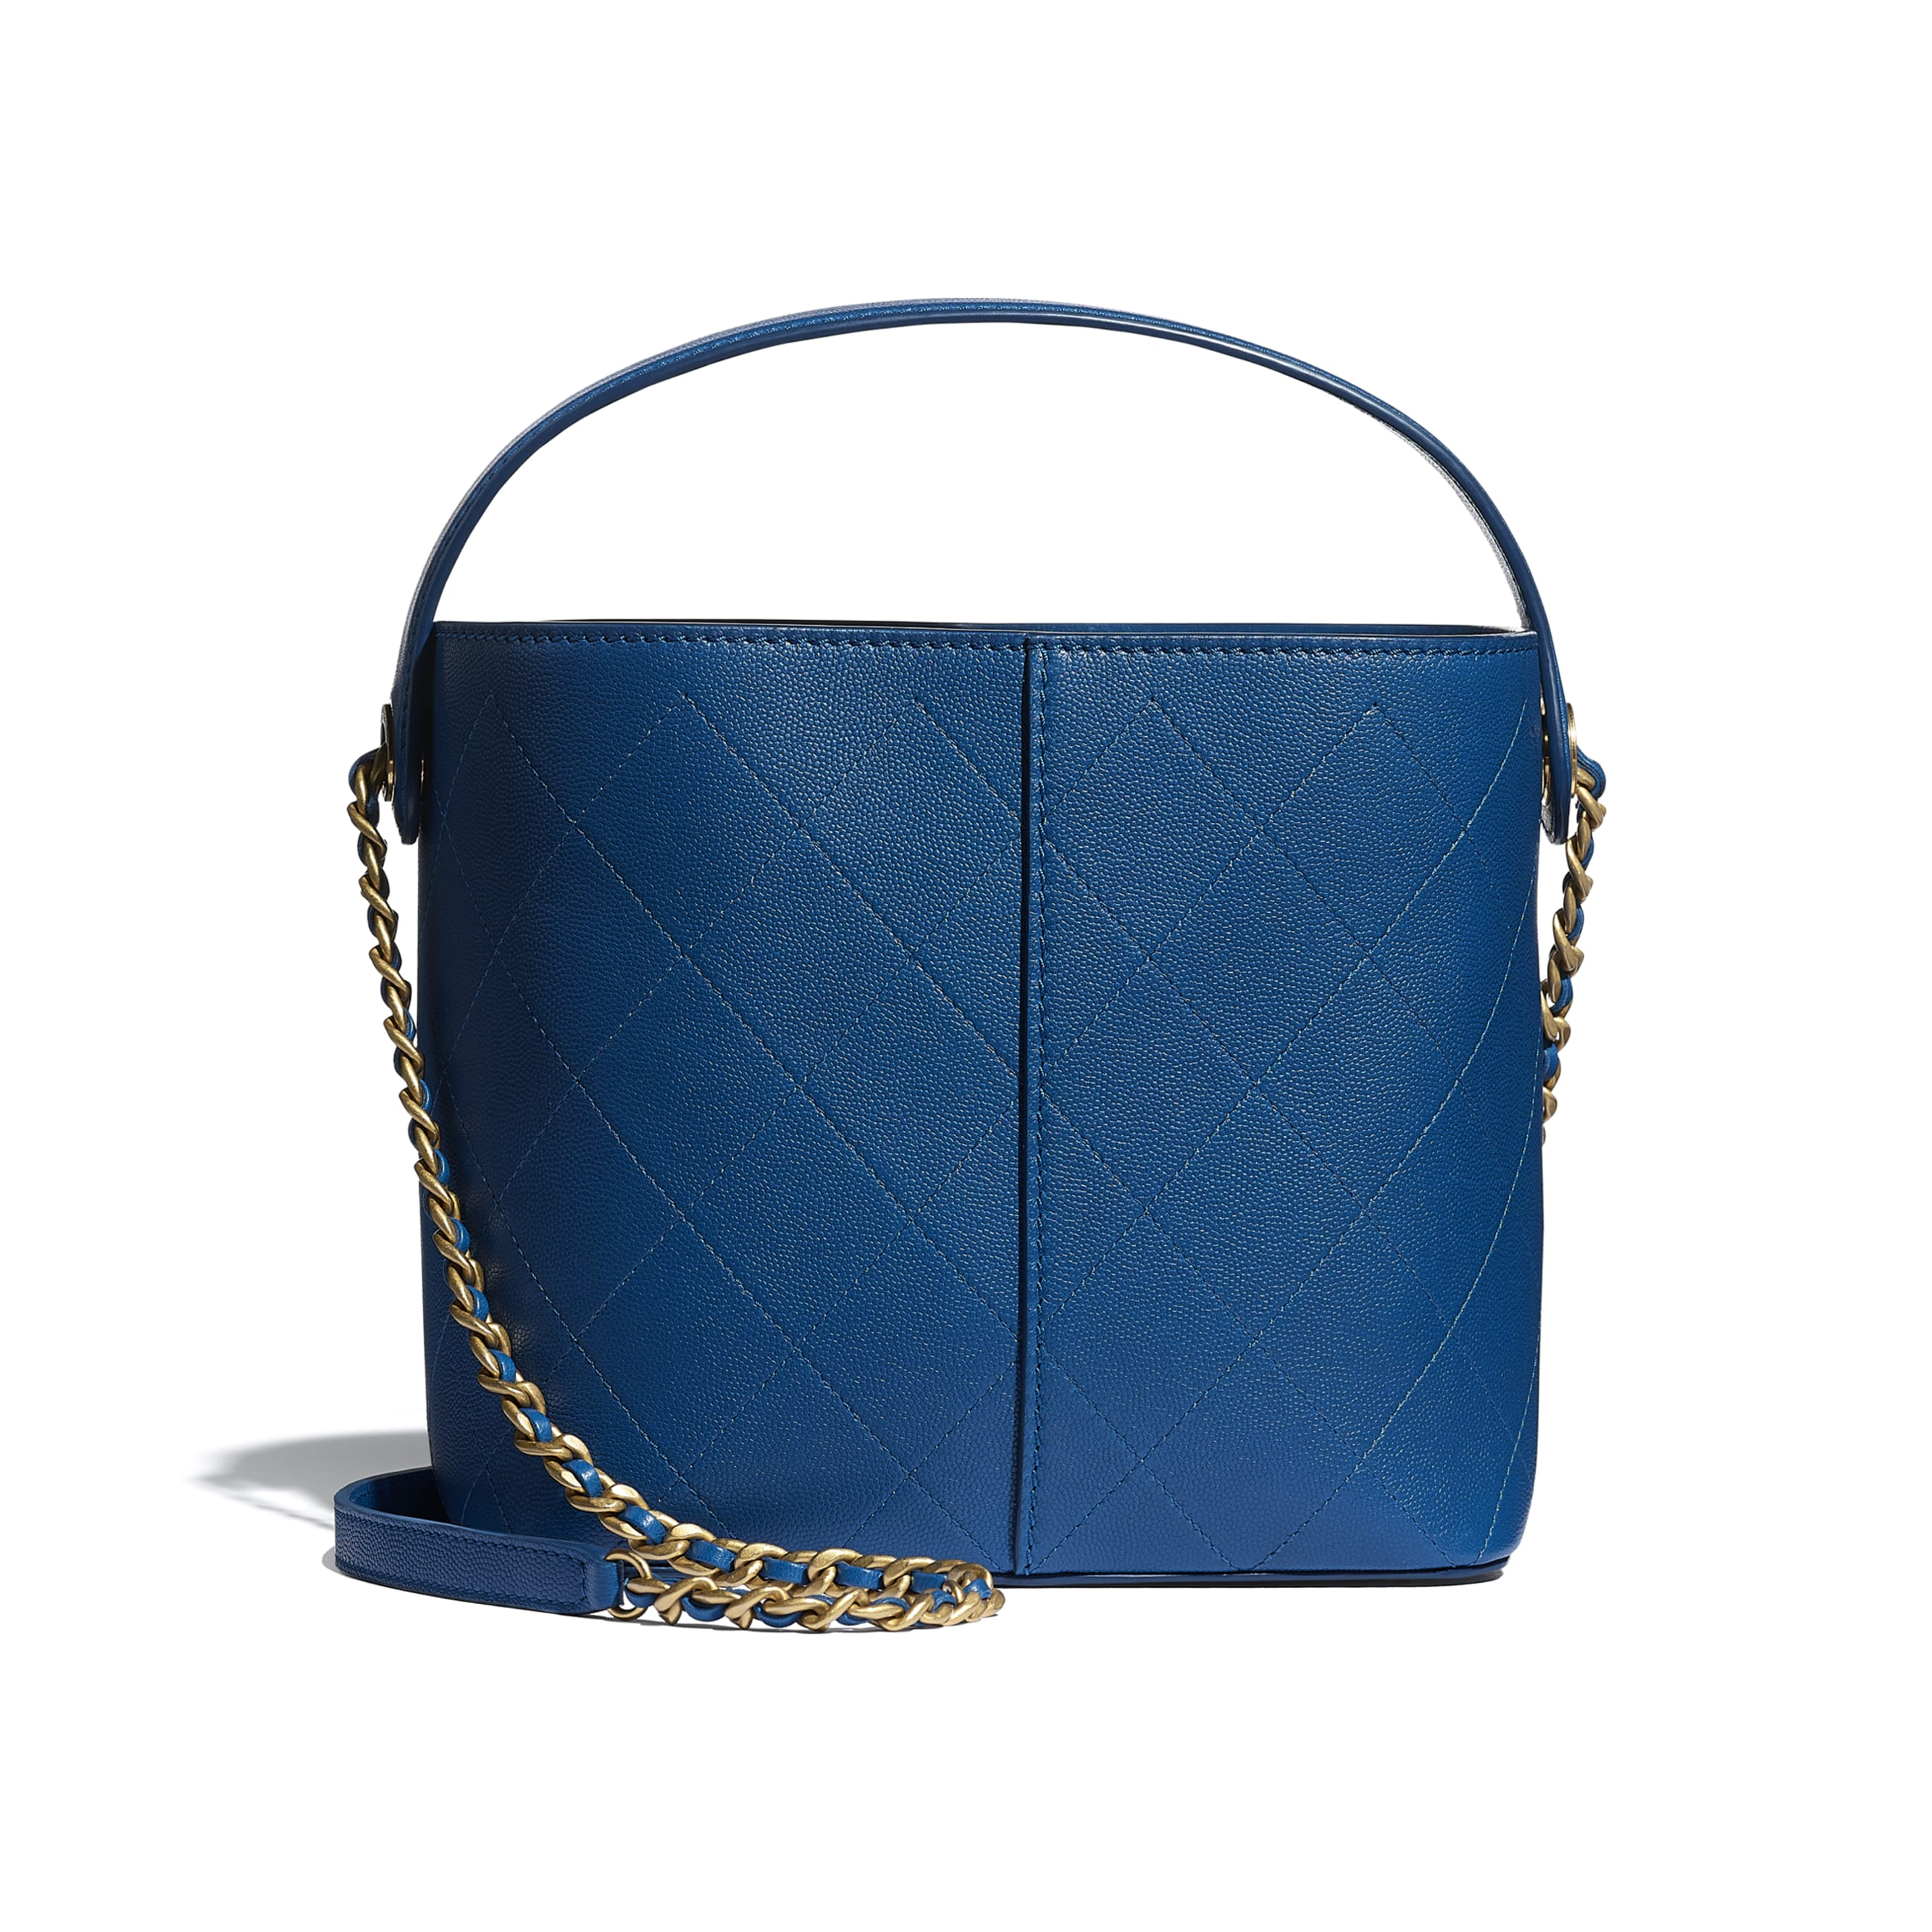 Small Tote - Blue - Grained Lambskin, Smooth Lambskin & Gold-Tone Metal - CHANEL - Alternative view - see standard sized version